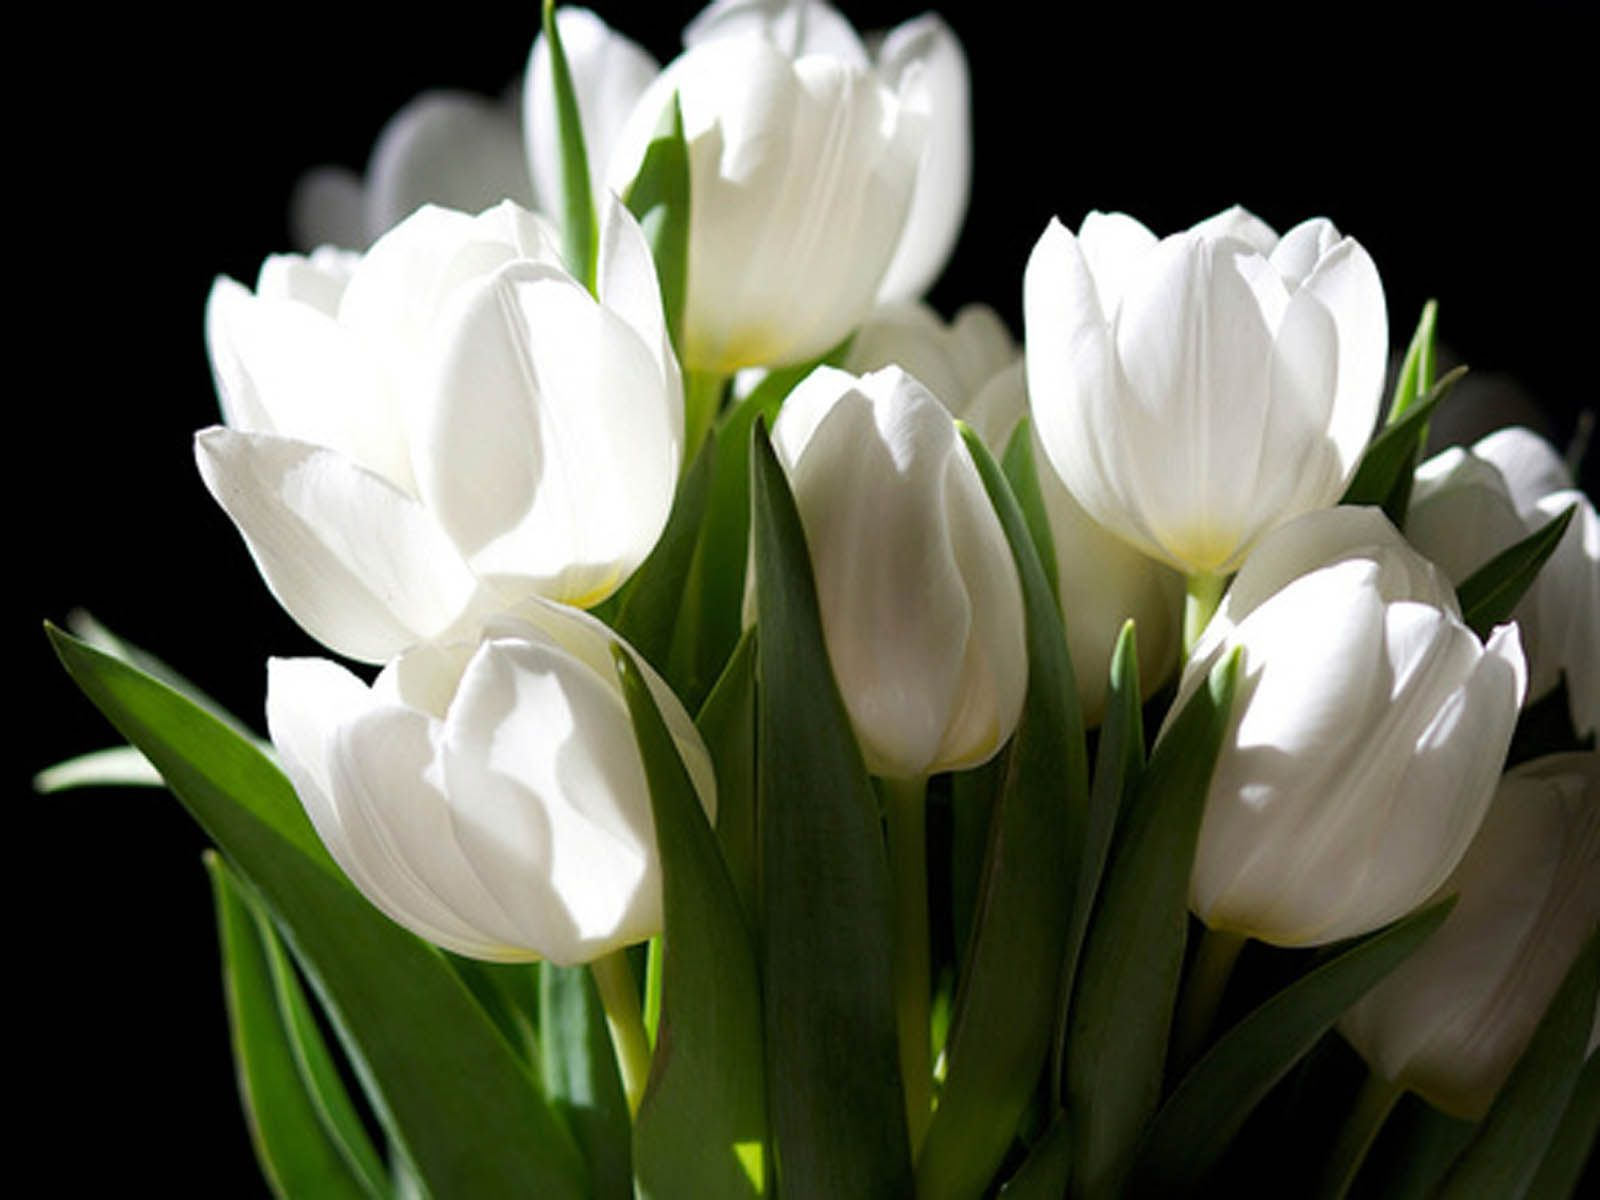 White Tulips Google Search Stephanie L 090817 Pinterest